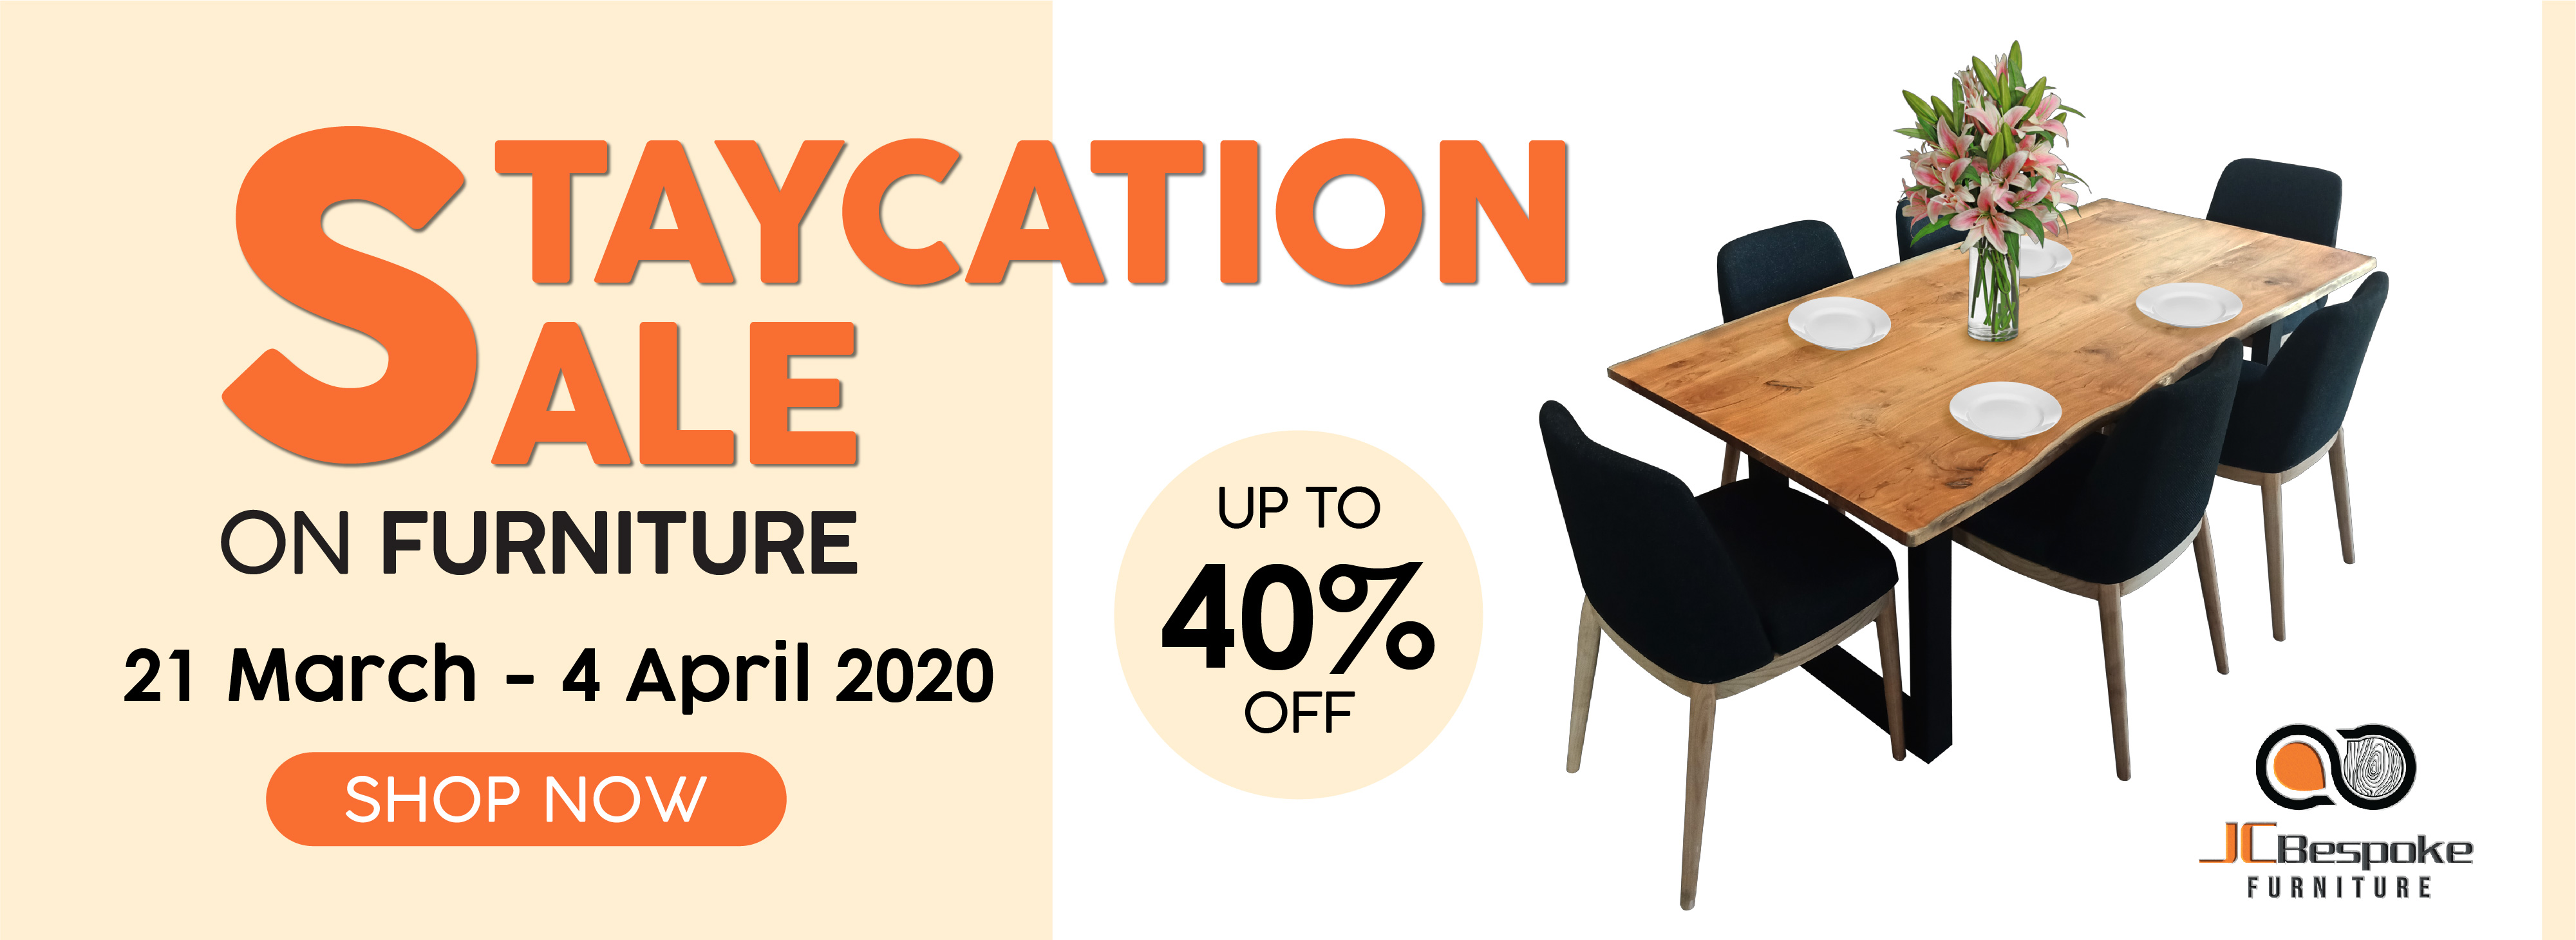 STAY-CATION SALE